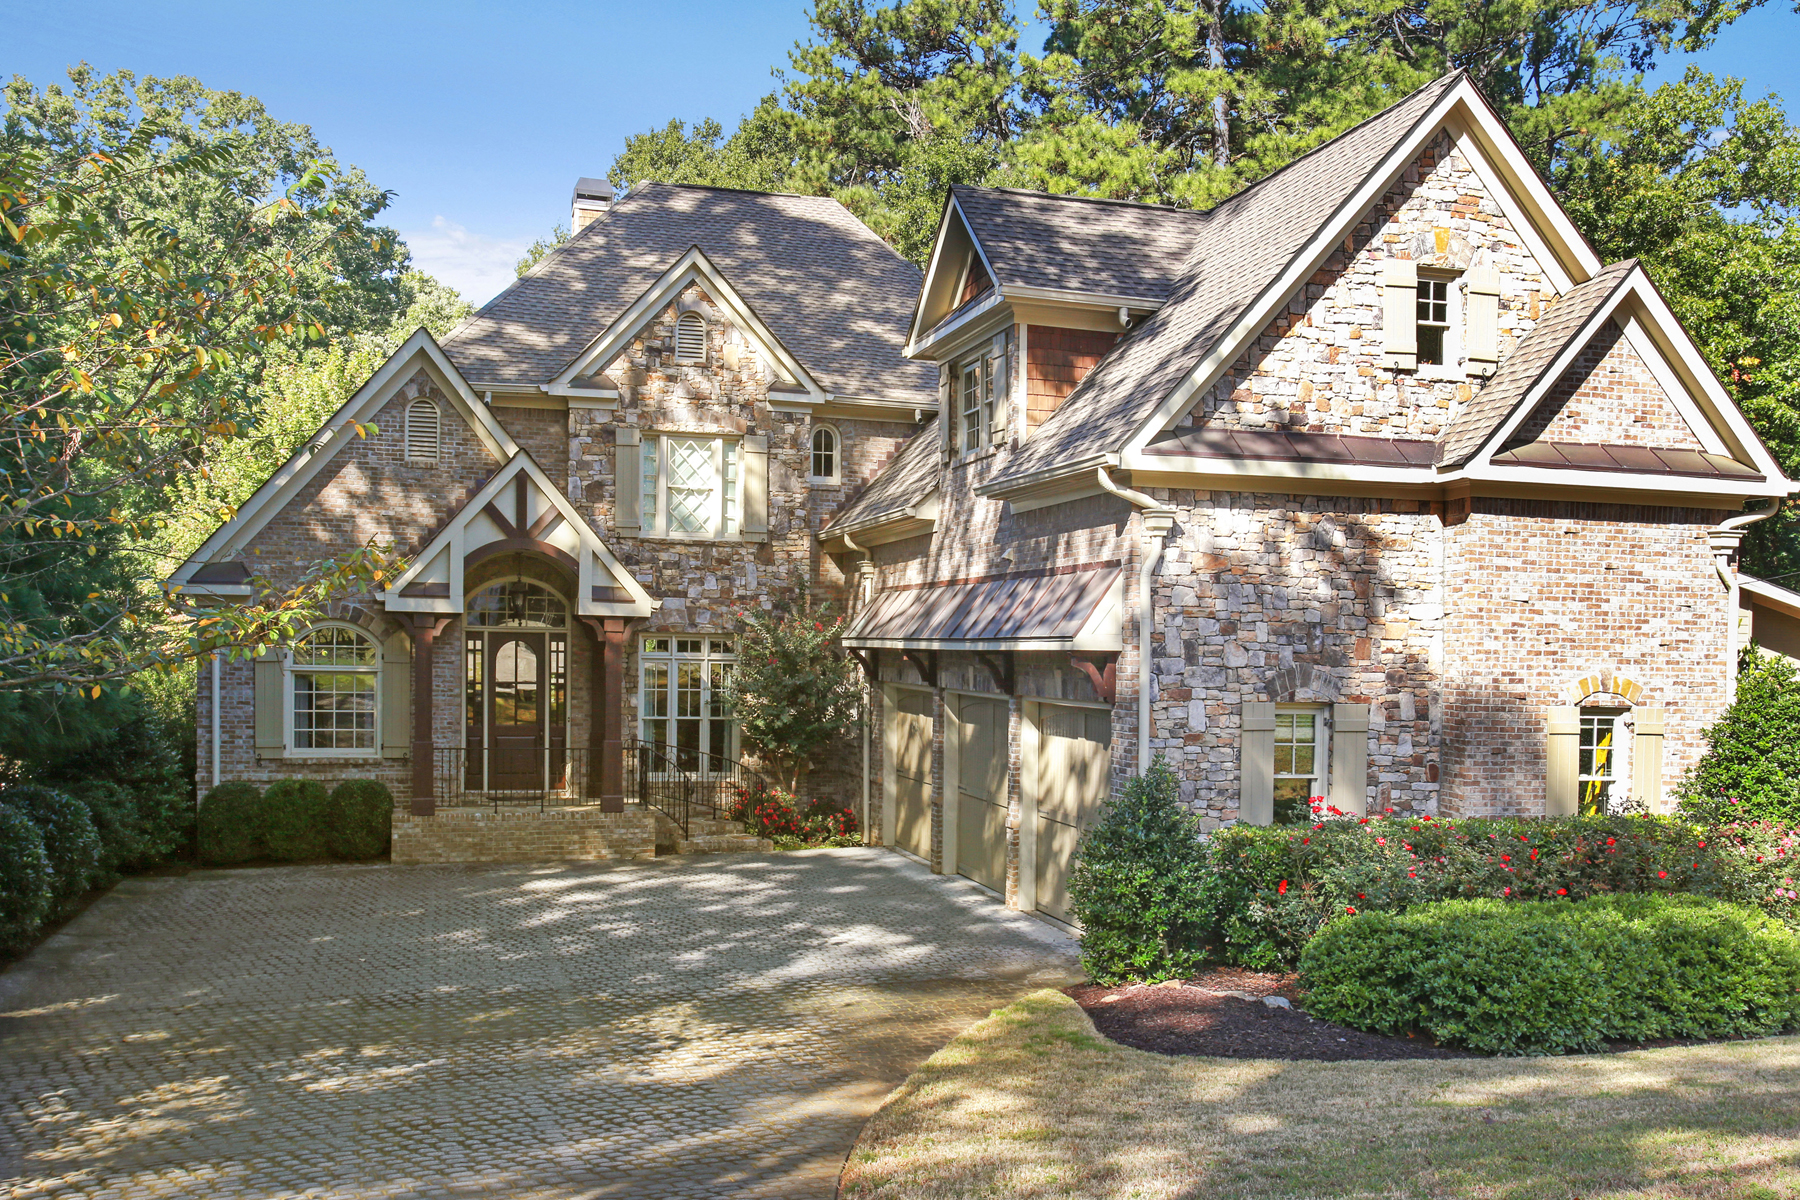 Maison unifamiliale pour l Vente à Sought After Chastain Park 4692 E Conway Drive NW, Chastain Park, Atlanta, Georgia, 30327 États-Unis